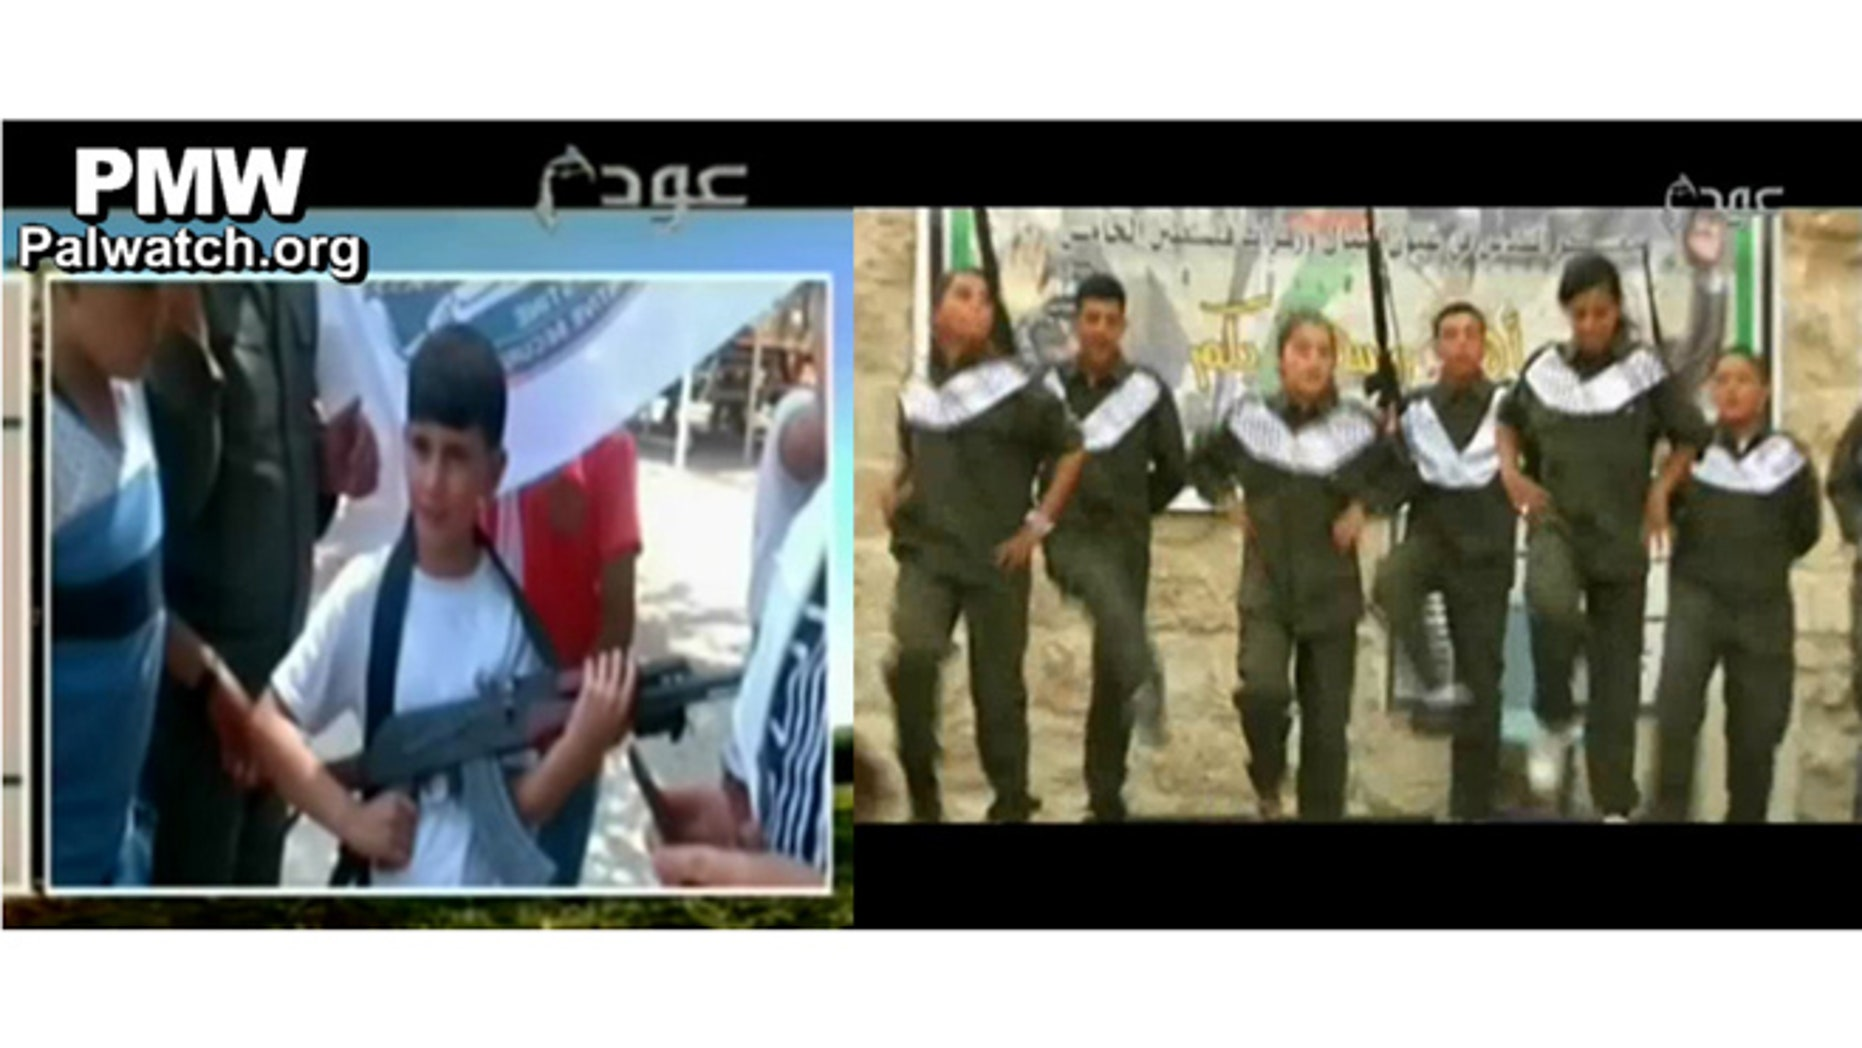 A child is seen holding an AK-47 and other children performed on stage in military uniforms holding rifles at a Palestinian Authority summer camp in videos discovered by Palestinian Media Watch. (PalWatch.org)